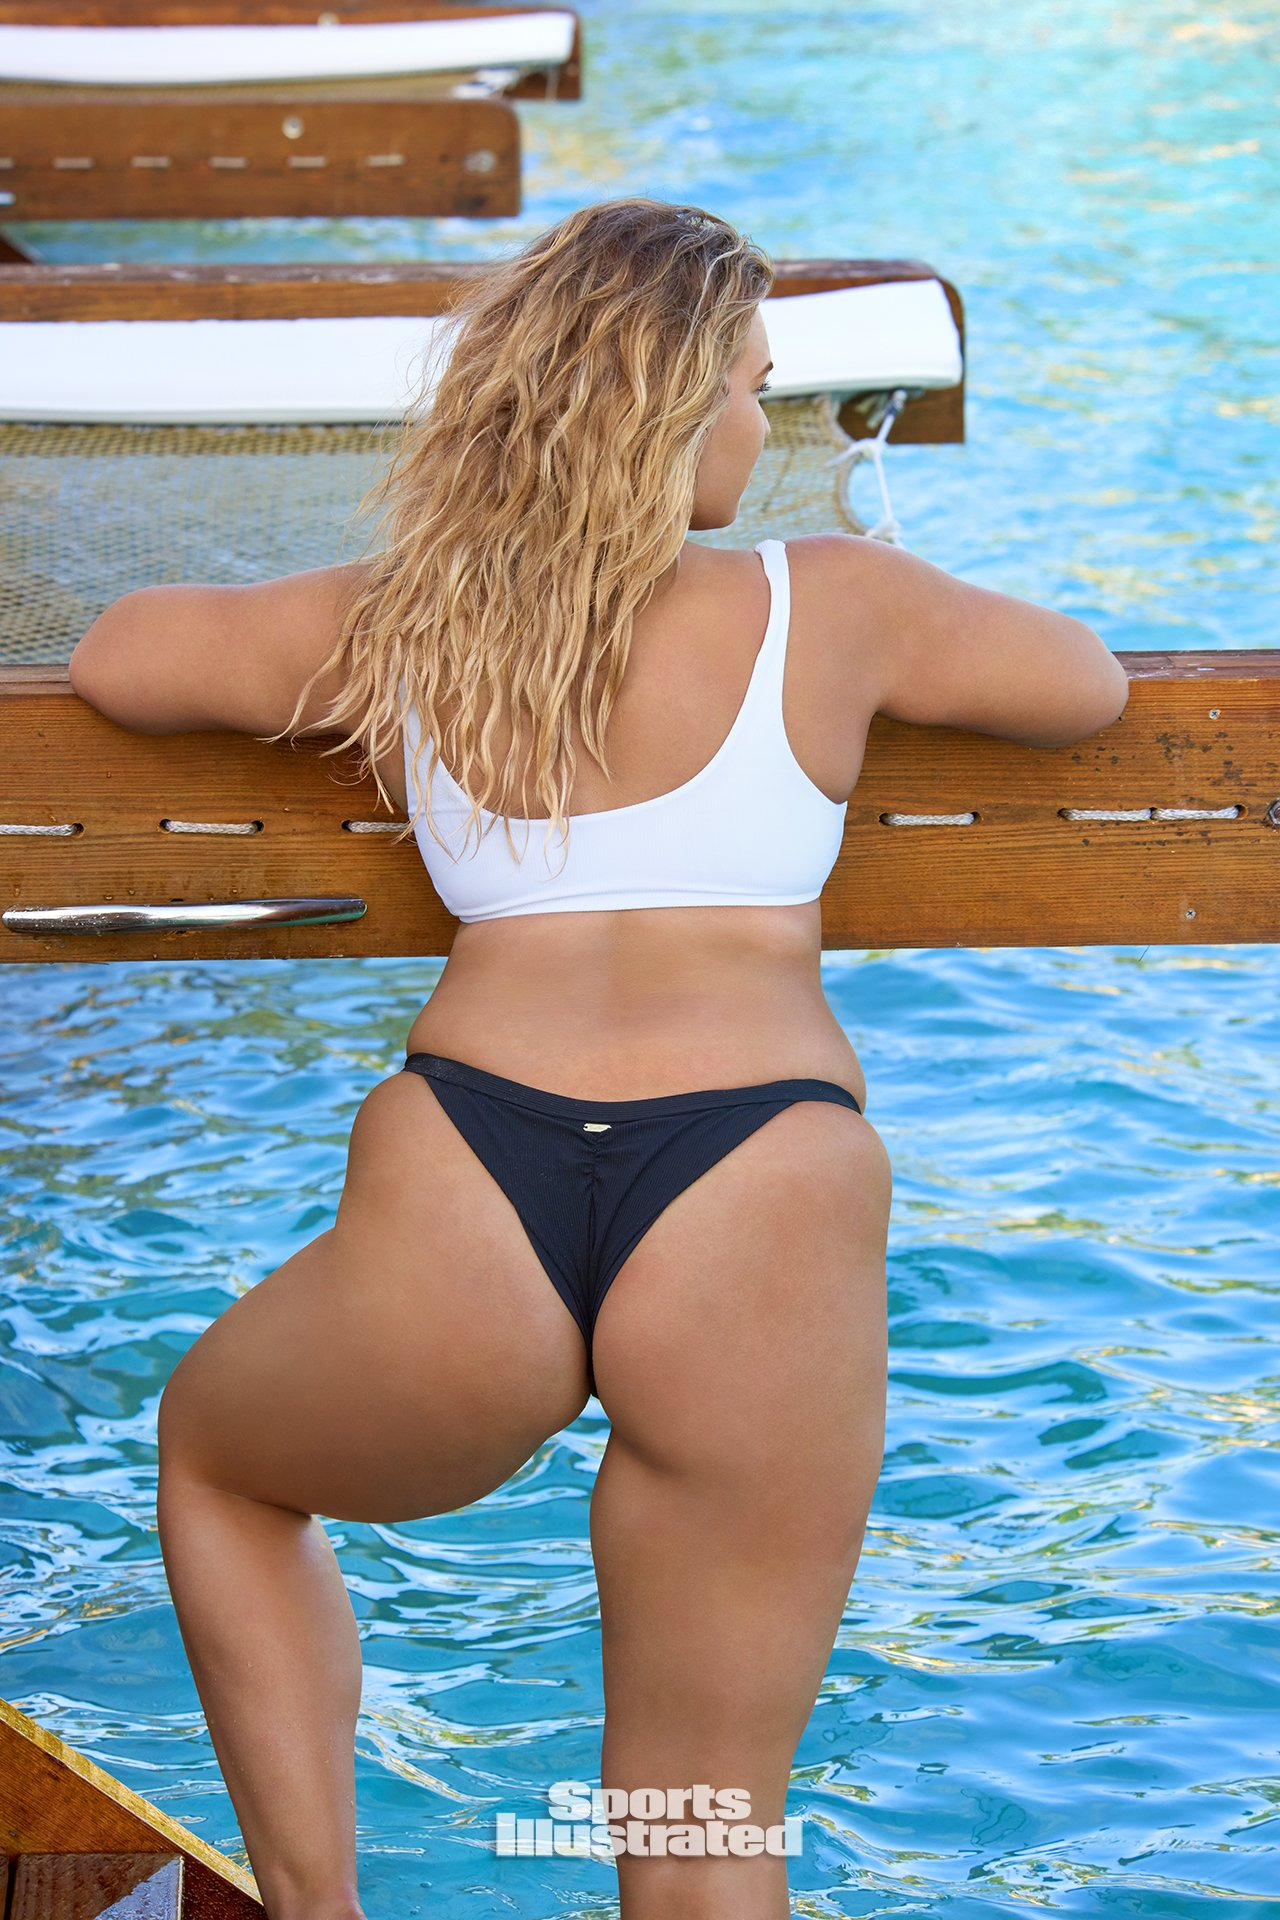 Sports Illustrated Swimsuit Issue 2018023.jpg